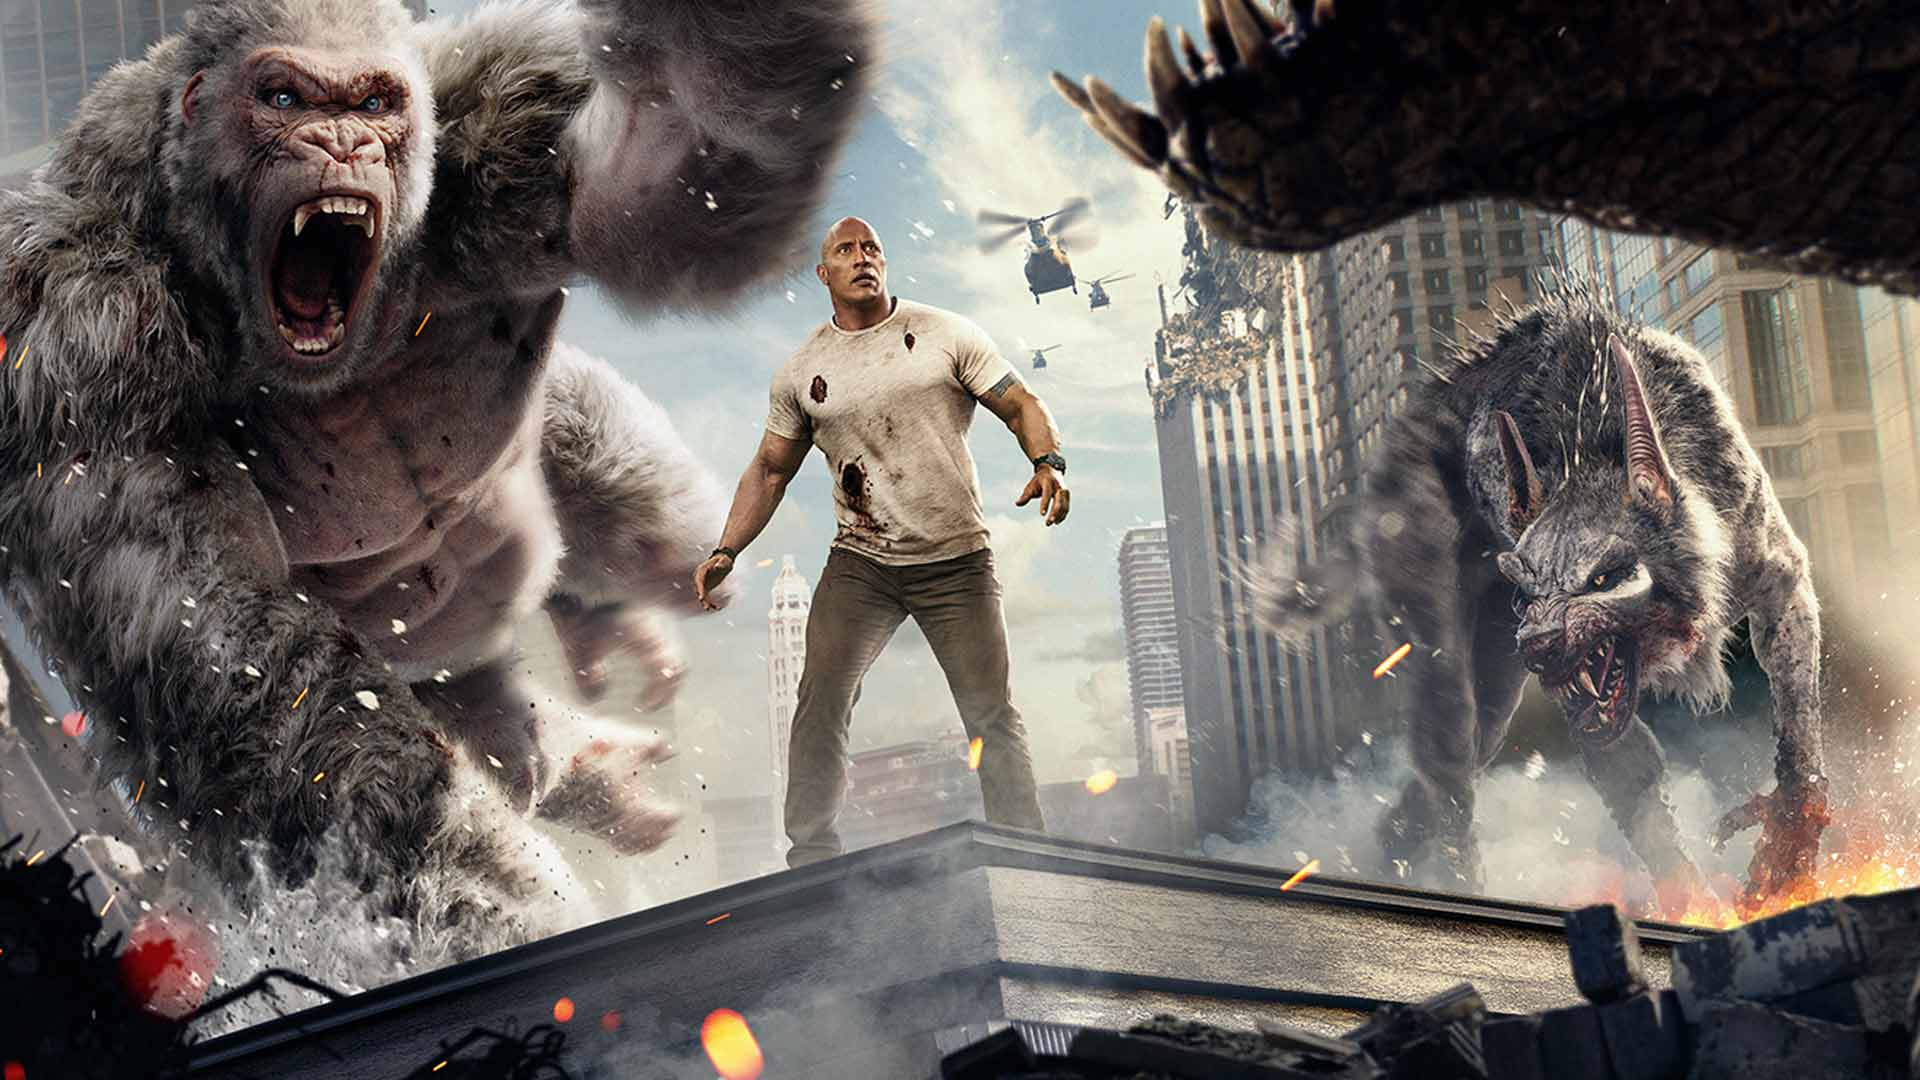 Rampage Movie Hd Wallpapers Download 1080p: Rampage (2018)- After The Credits